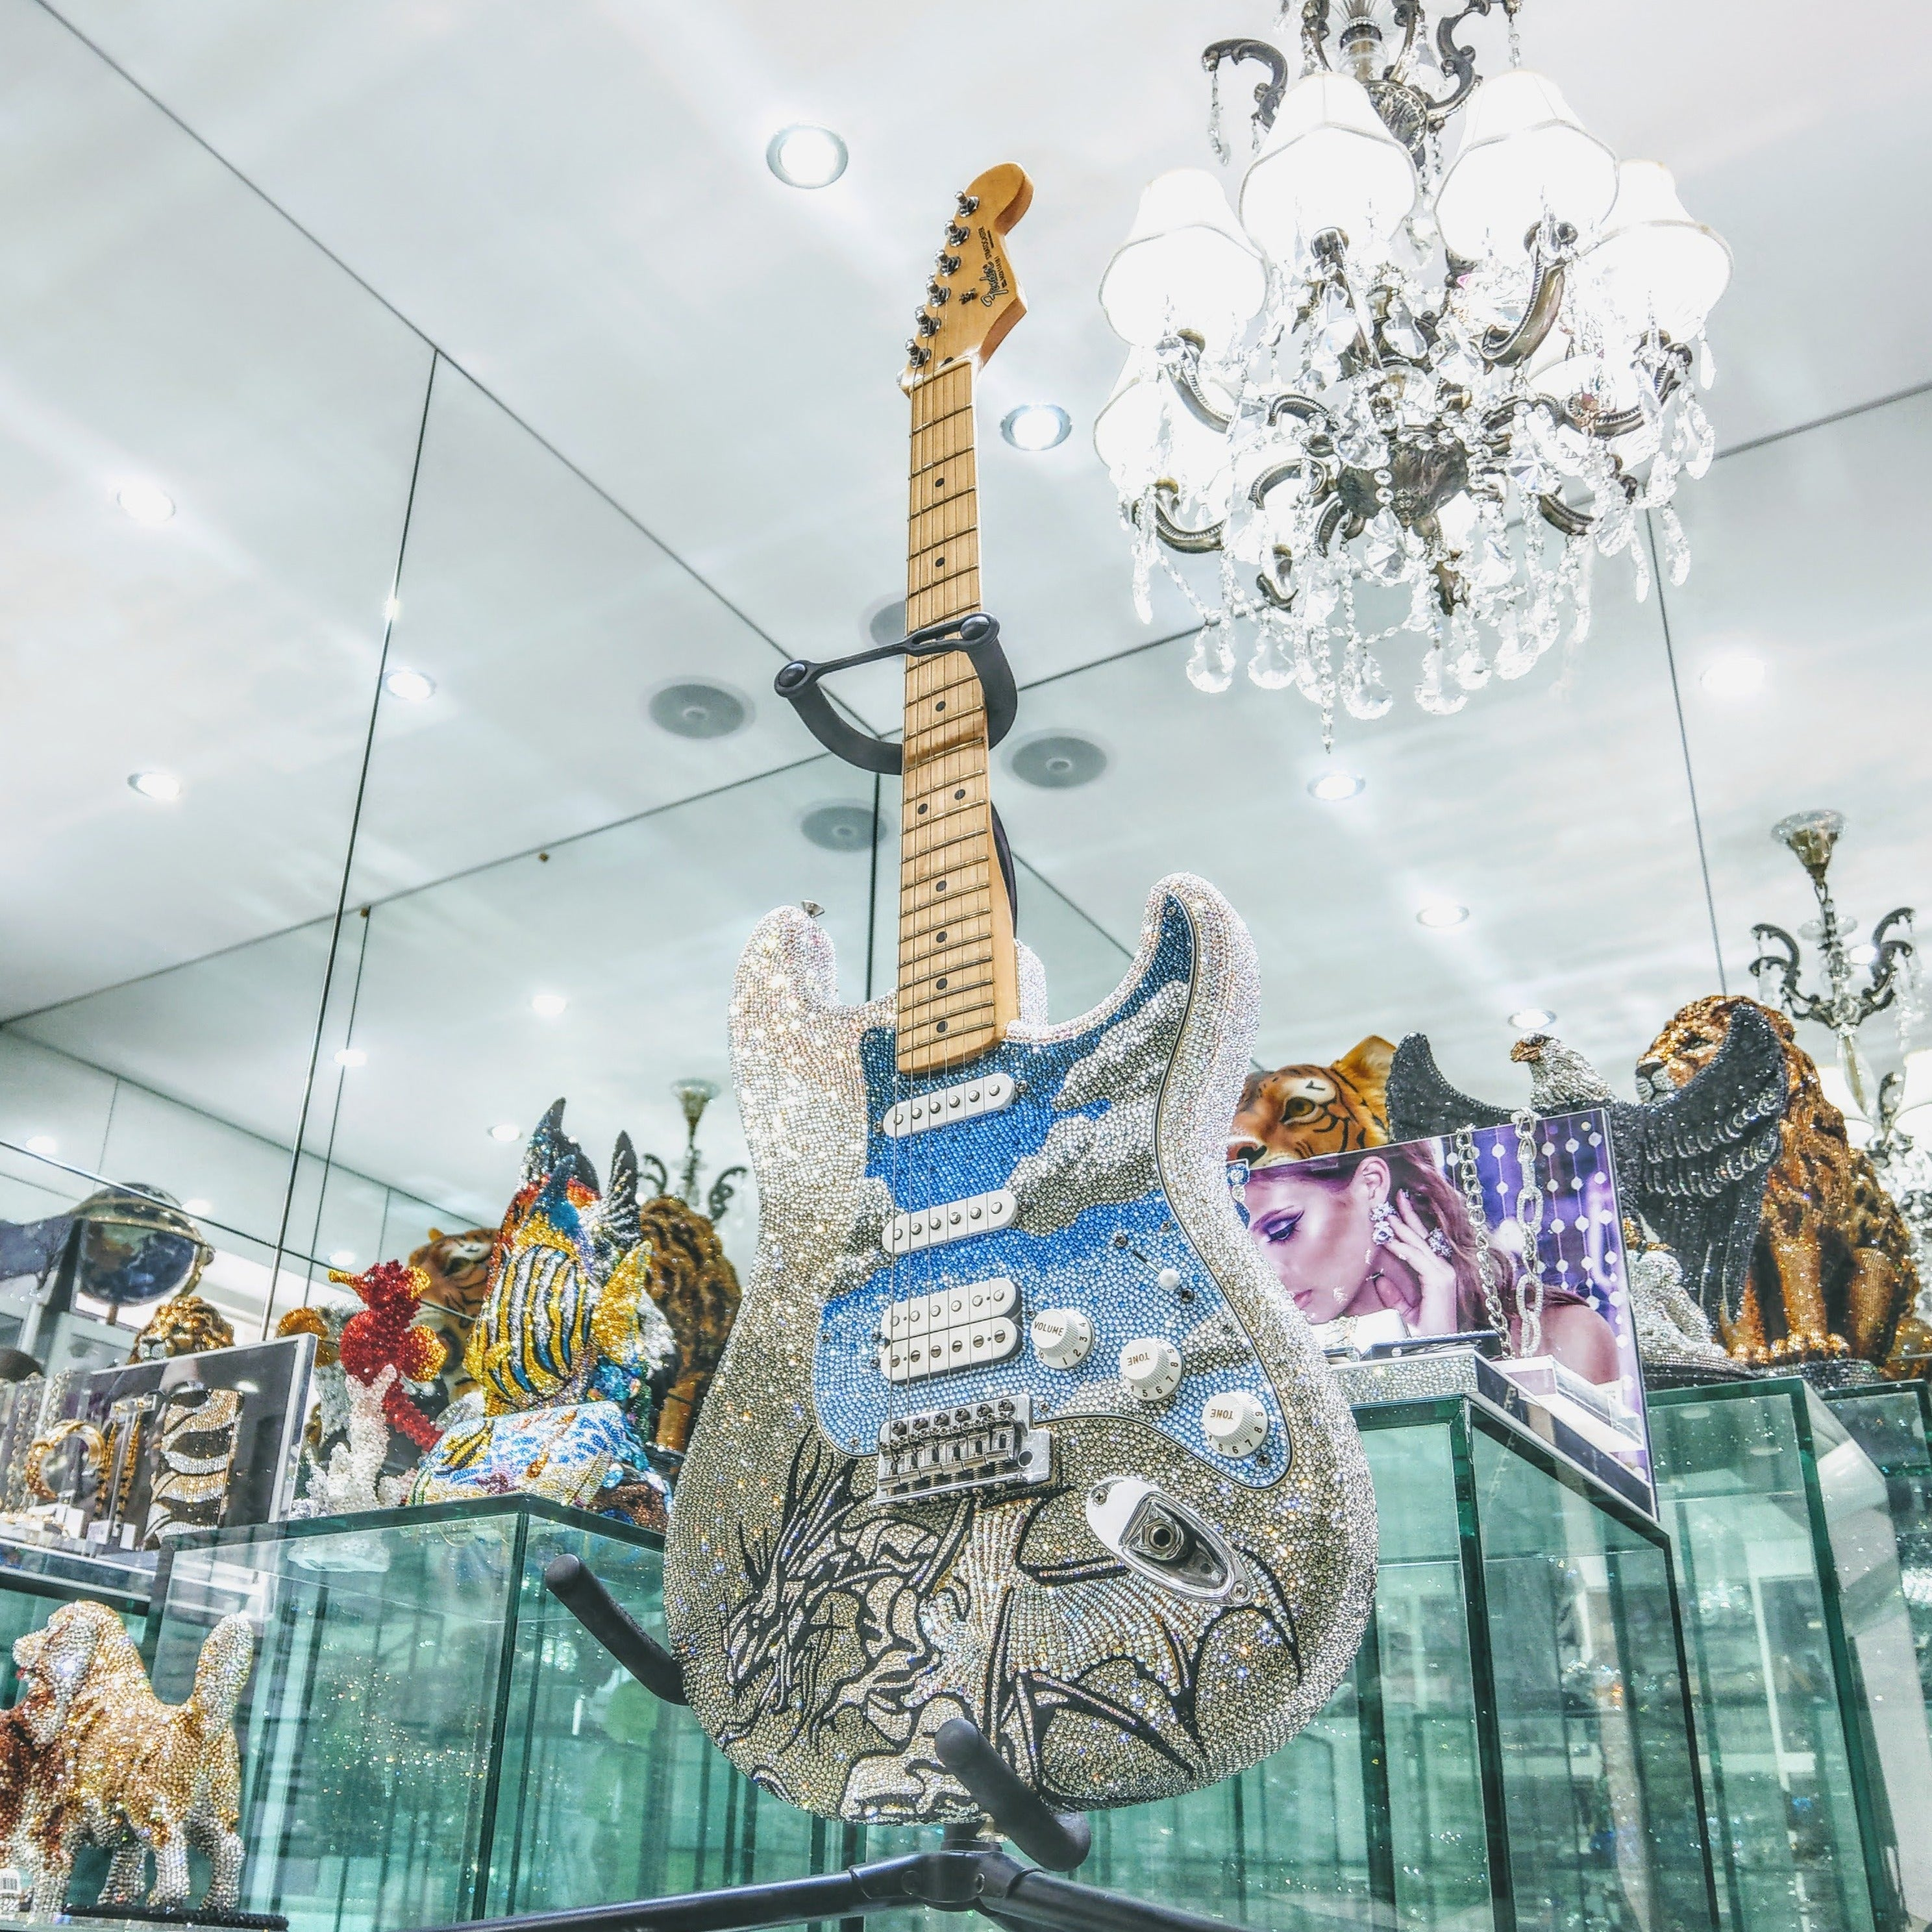 FENDER ELECTRIC GUITAR - POPUP SALE - Jimmy Crystal New York